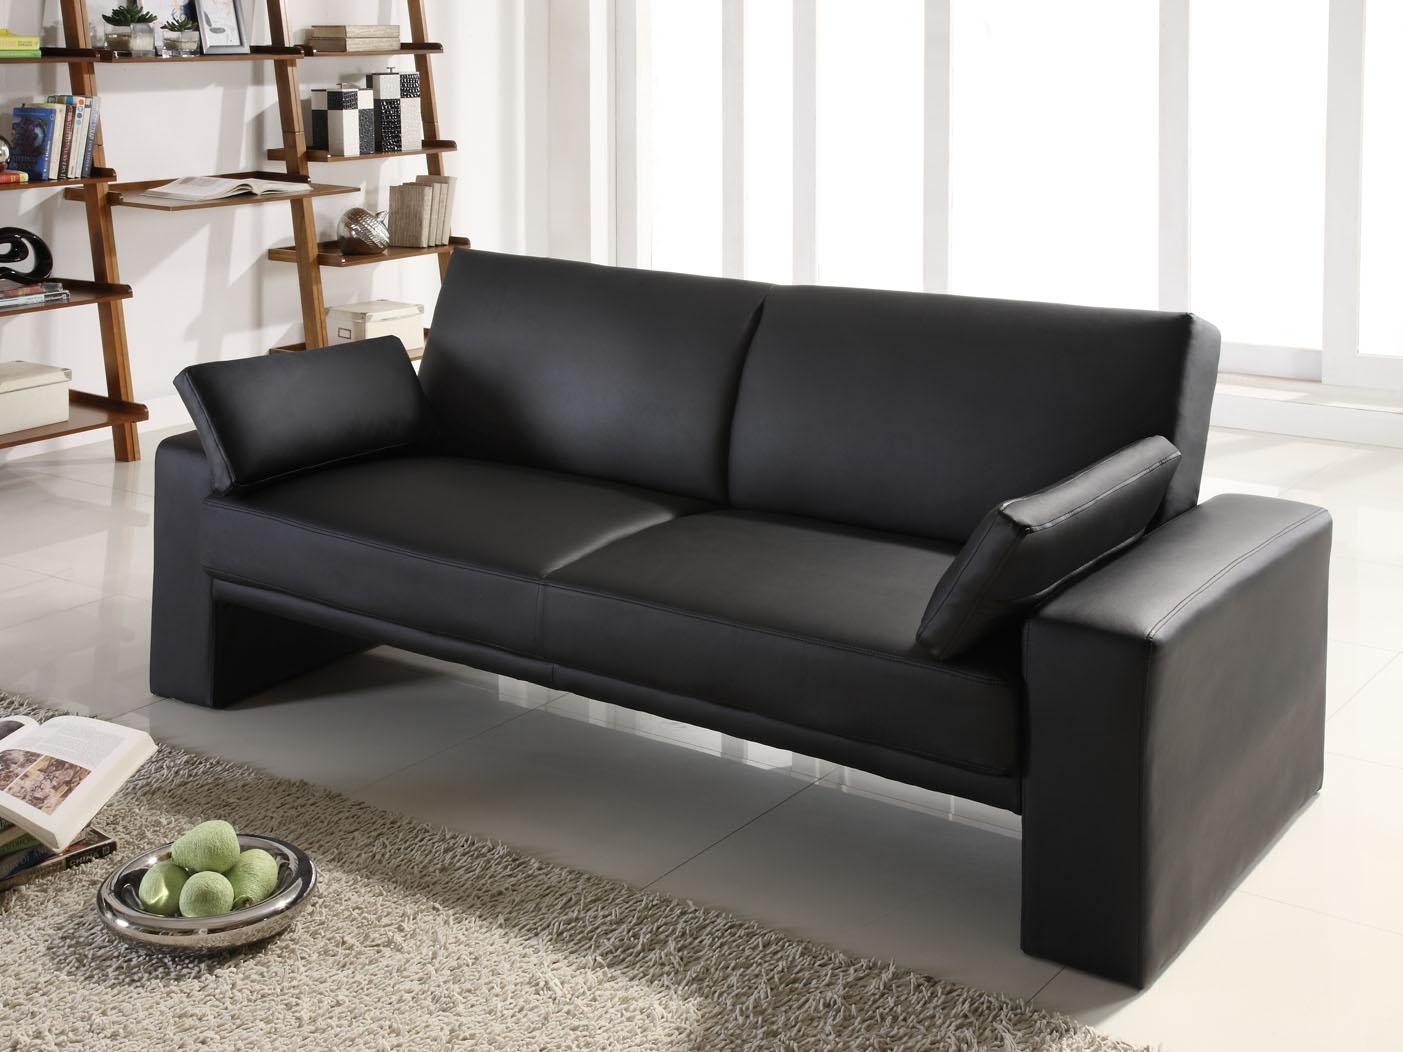 Black Leather Convertible Sofa 72 With Black Leather Convertible For Black Leather Convertible Sofas (Image 3 of 20)